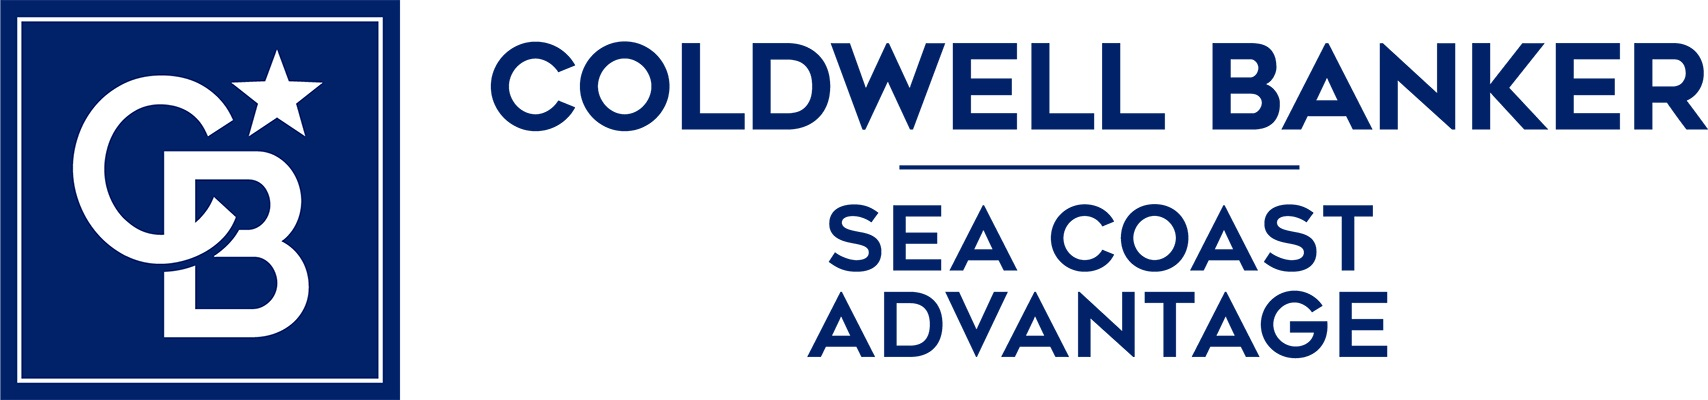 Denise Williams - Coldwell Banker Sea Coast Advantage Realty